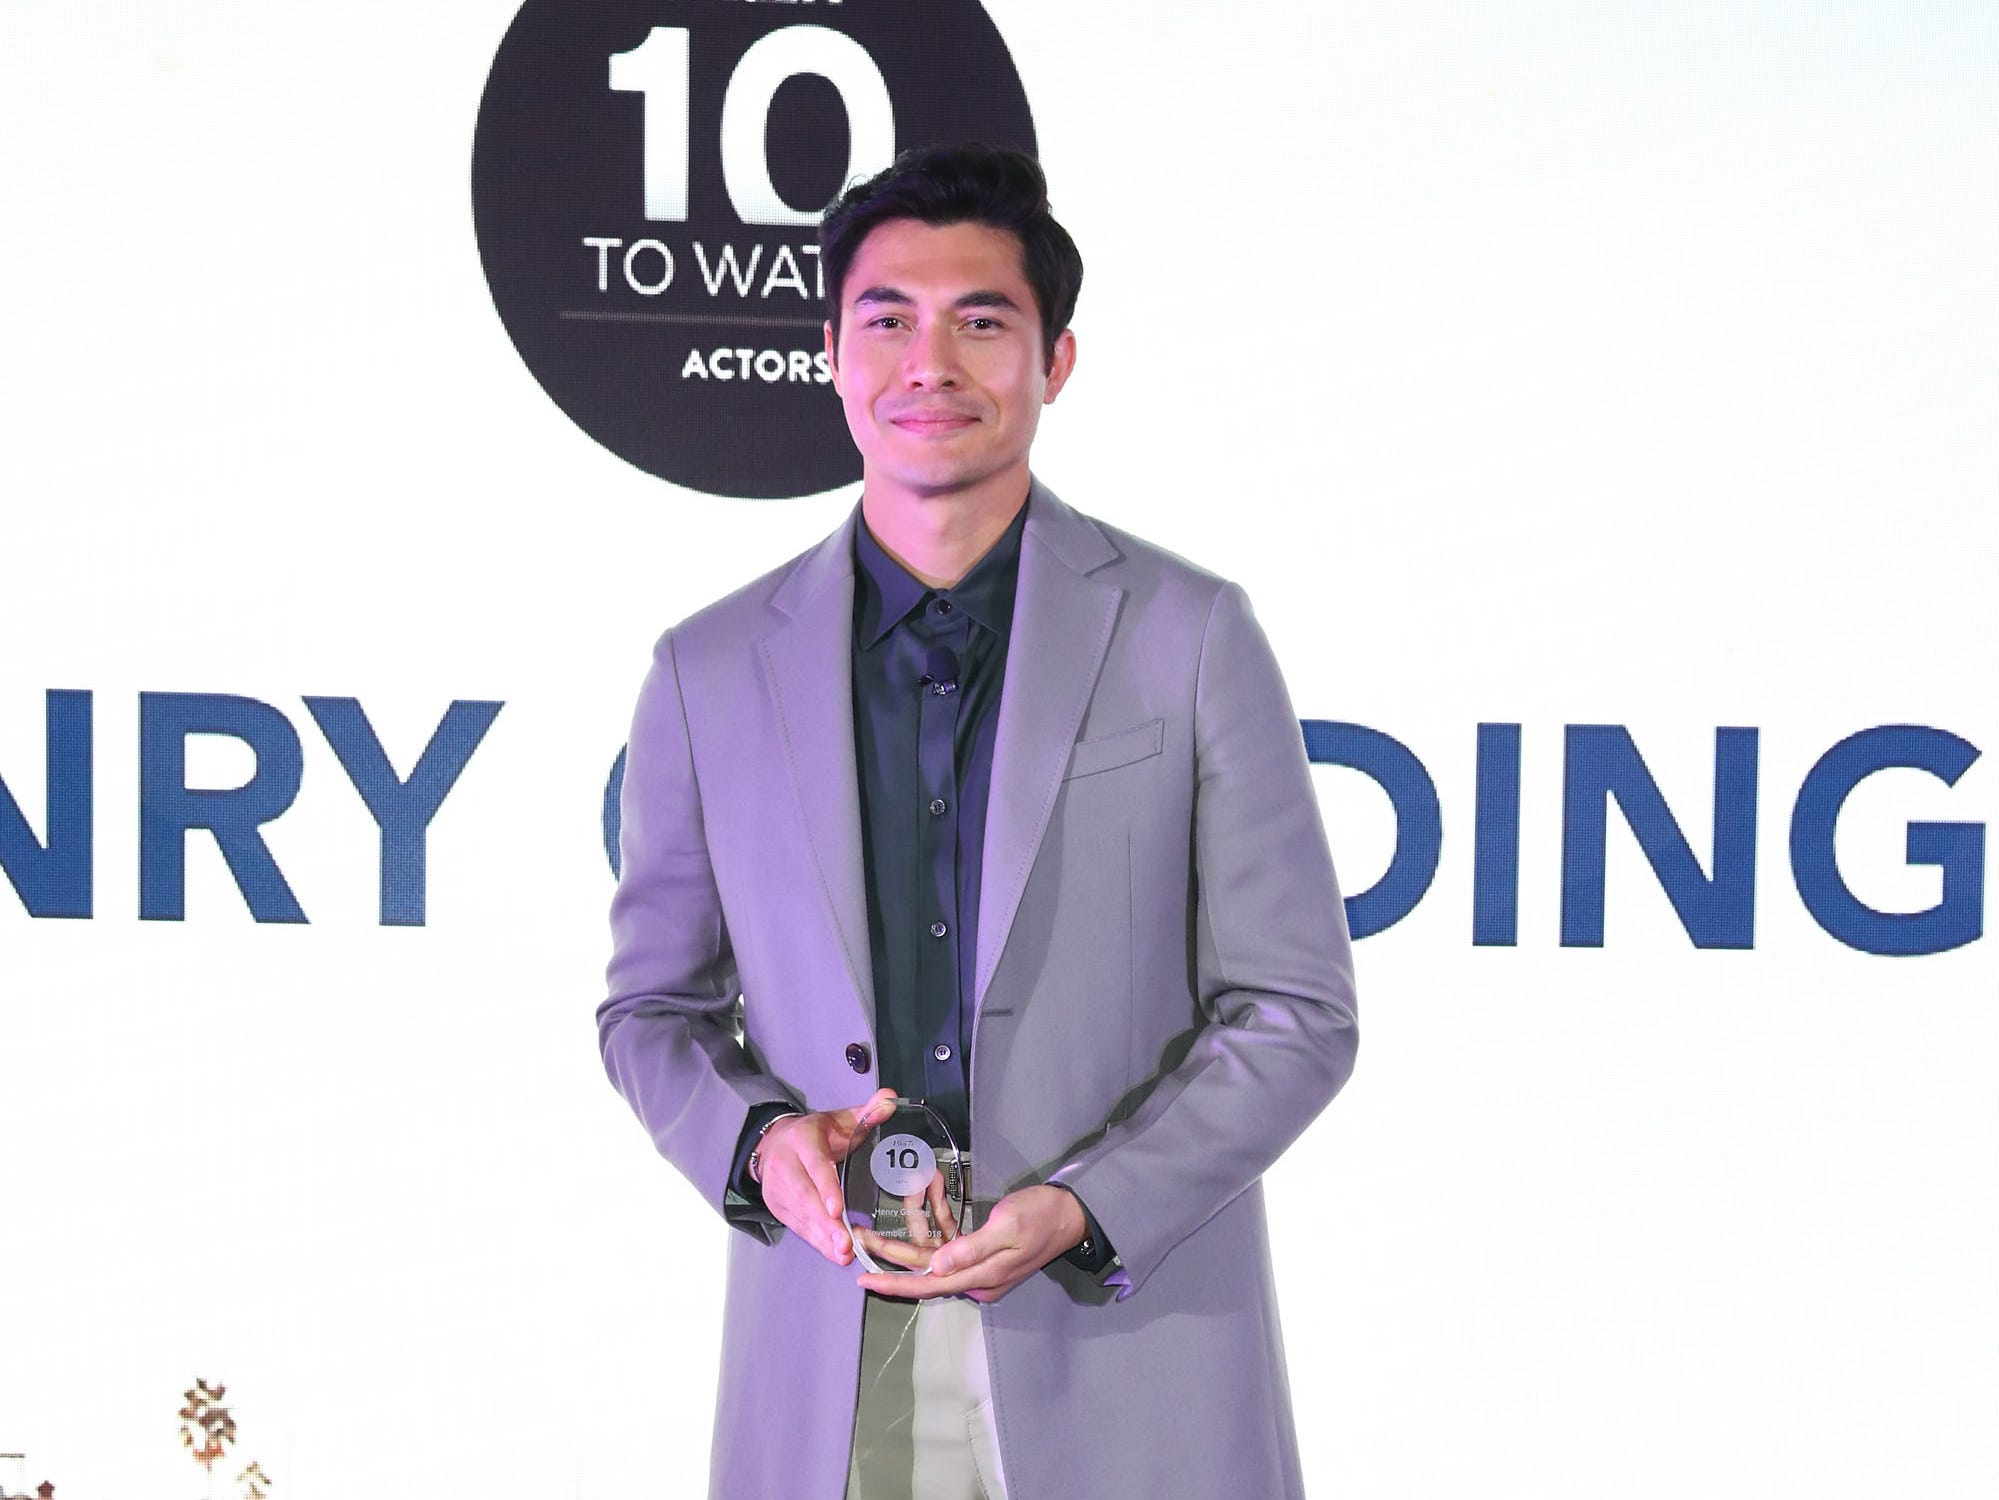 NEWPORT BEACH, CA - NOVEMBER 11:  Henry Golding onstage as Variety's 10 Actors to Watch honoree at the Newport Beach Film Festival Fall Honors and Variety's 10 Actors To Watch at The Resort at Pelican Hill on November 11, 2018 in Newport Beach, California.  (Photo by Joe Scarnici/Getty Images for Visit Newport Beach) ORG XMIT: 775256273 ORIG FILE ID: 1060355526